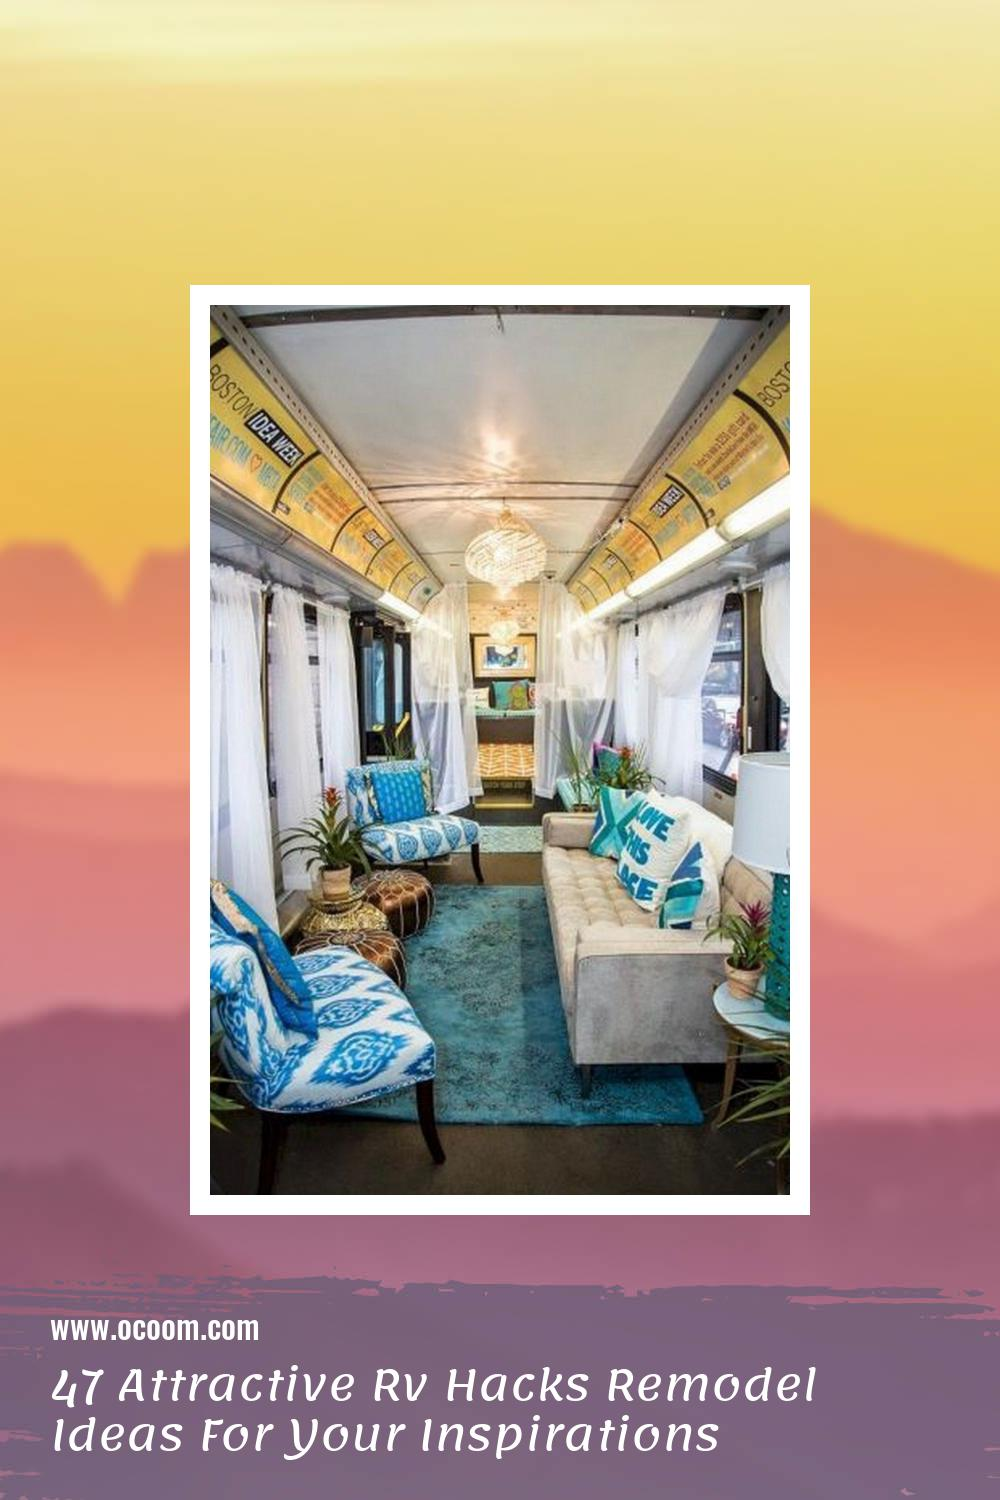 47 Attractive Rv Hacks Remodel Ideas For Your Inspirations 3